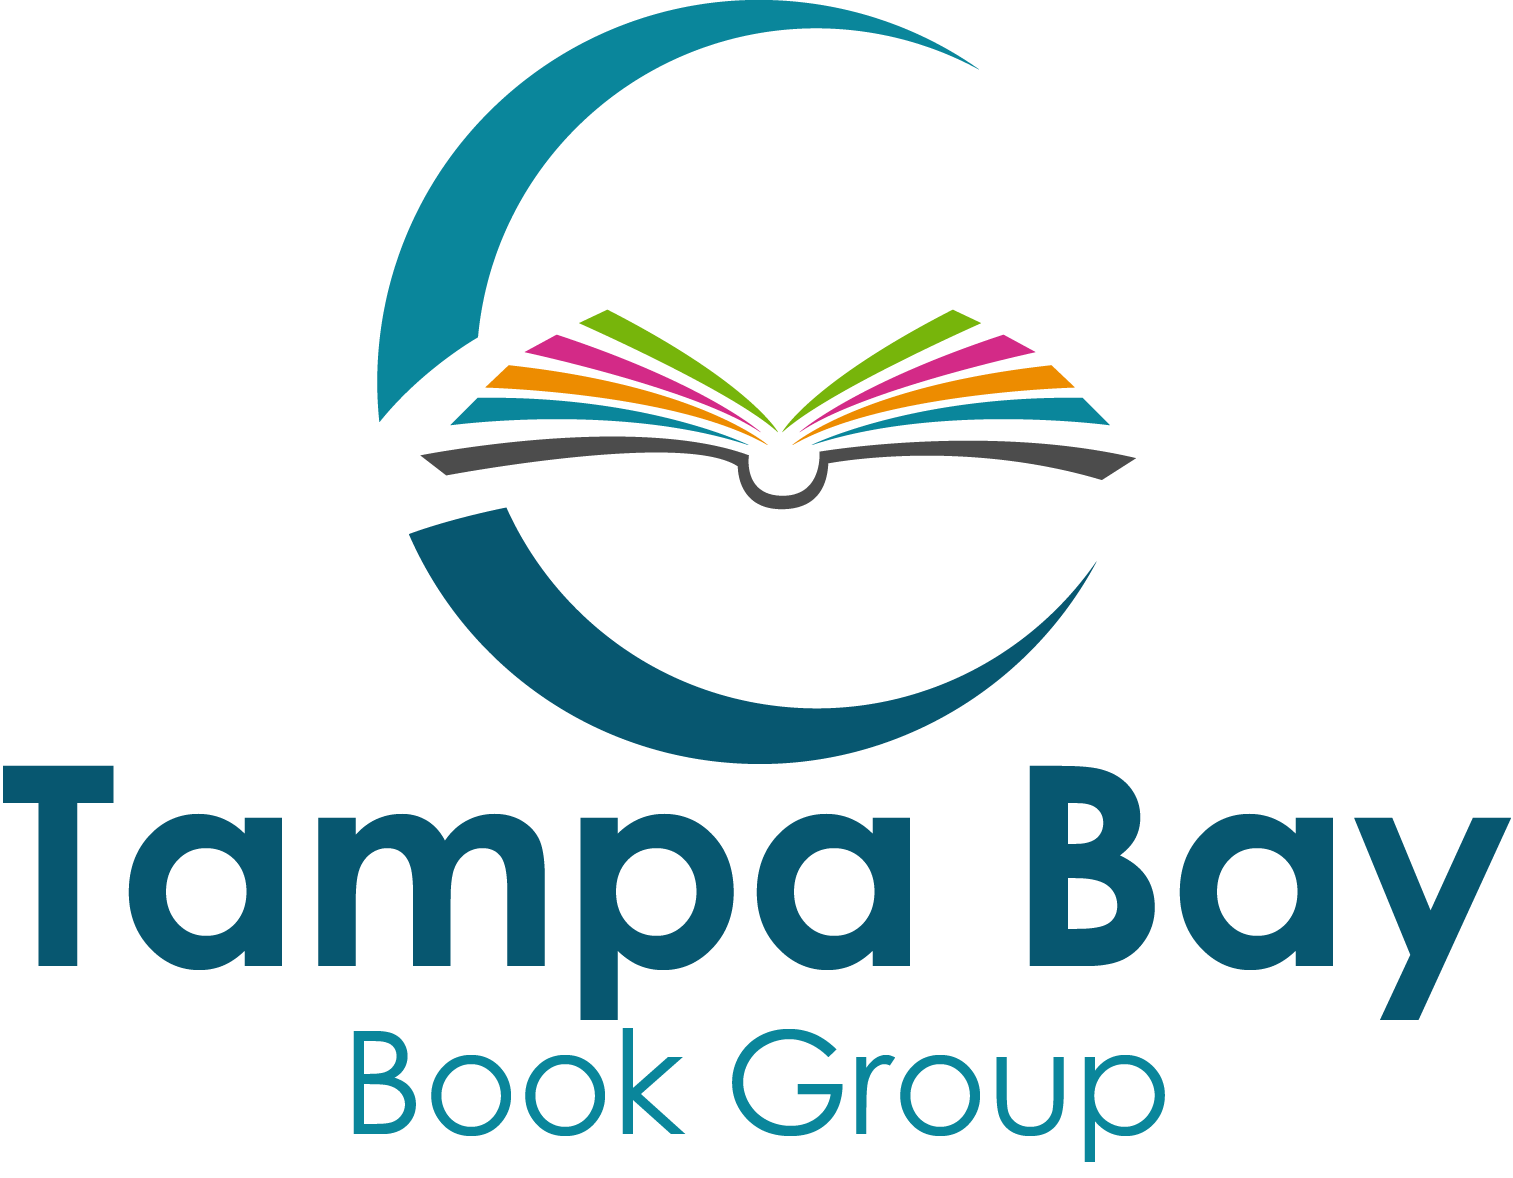 Tampa Bay Book Group